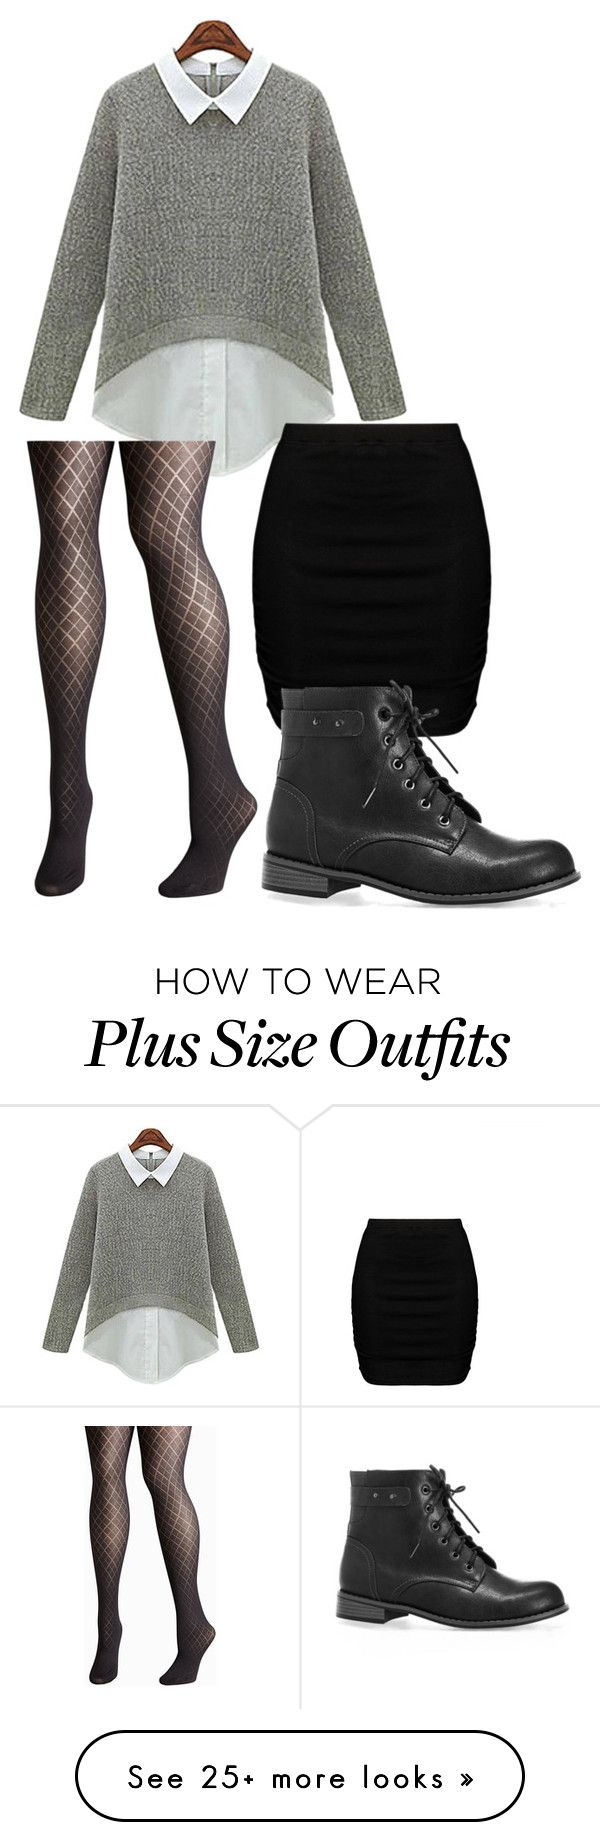 """Sem título #233"" by brunasthefanny on Polyvore featuring Avenue and Zizzi"